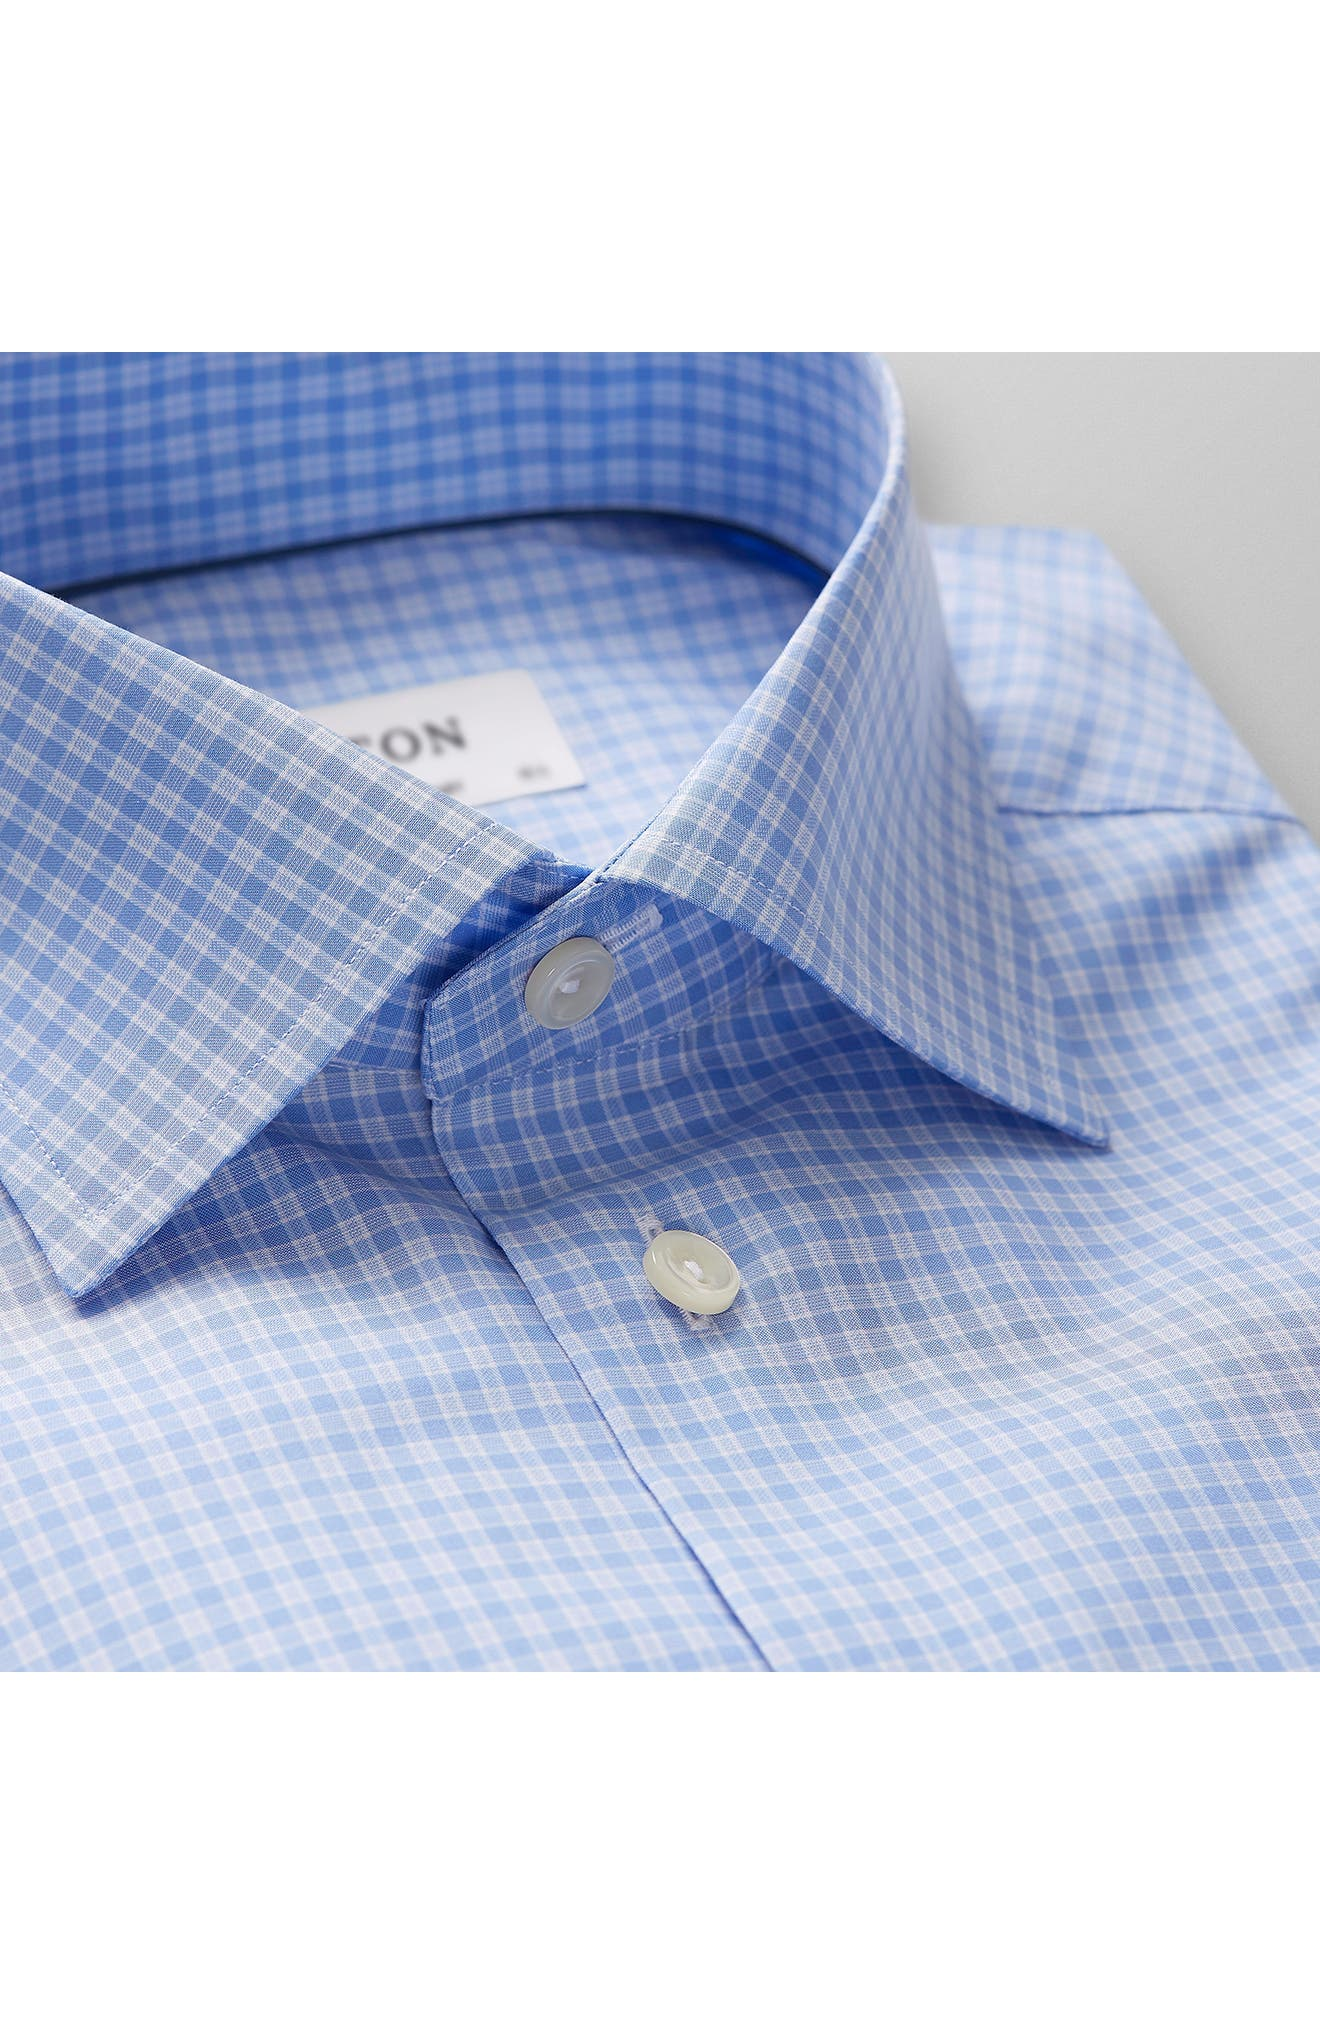 Contemporary Fit Check Dress Shirt,                             Alternate thumbnail 2, color,                             400